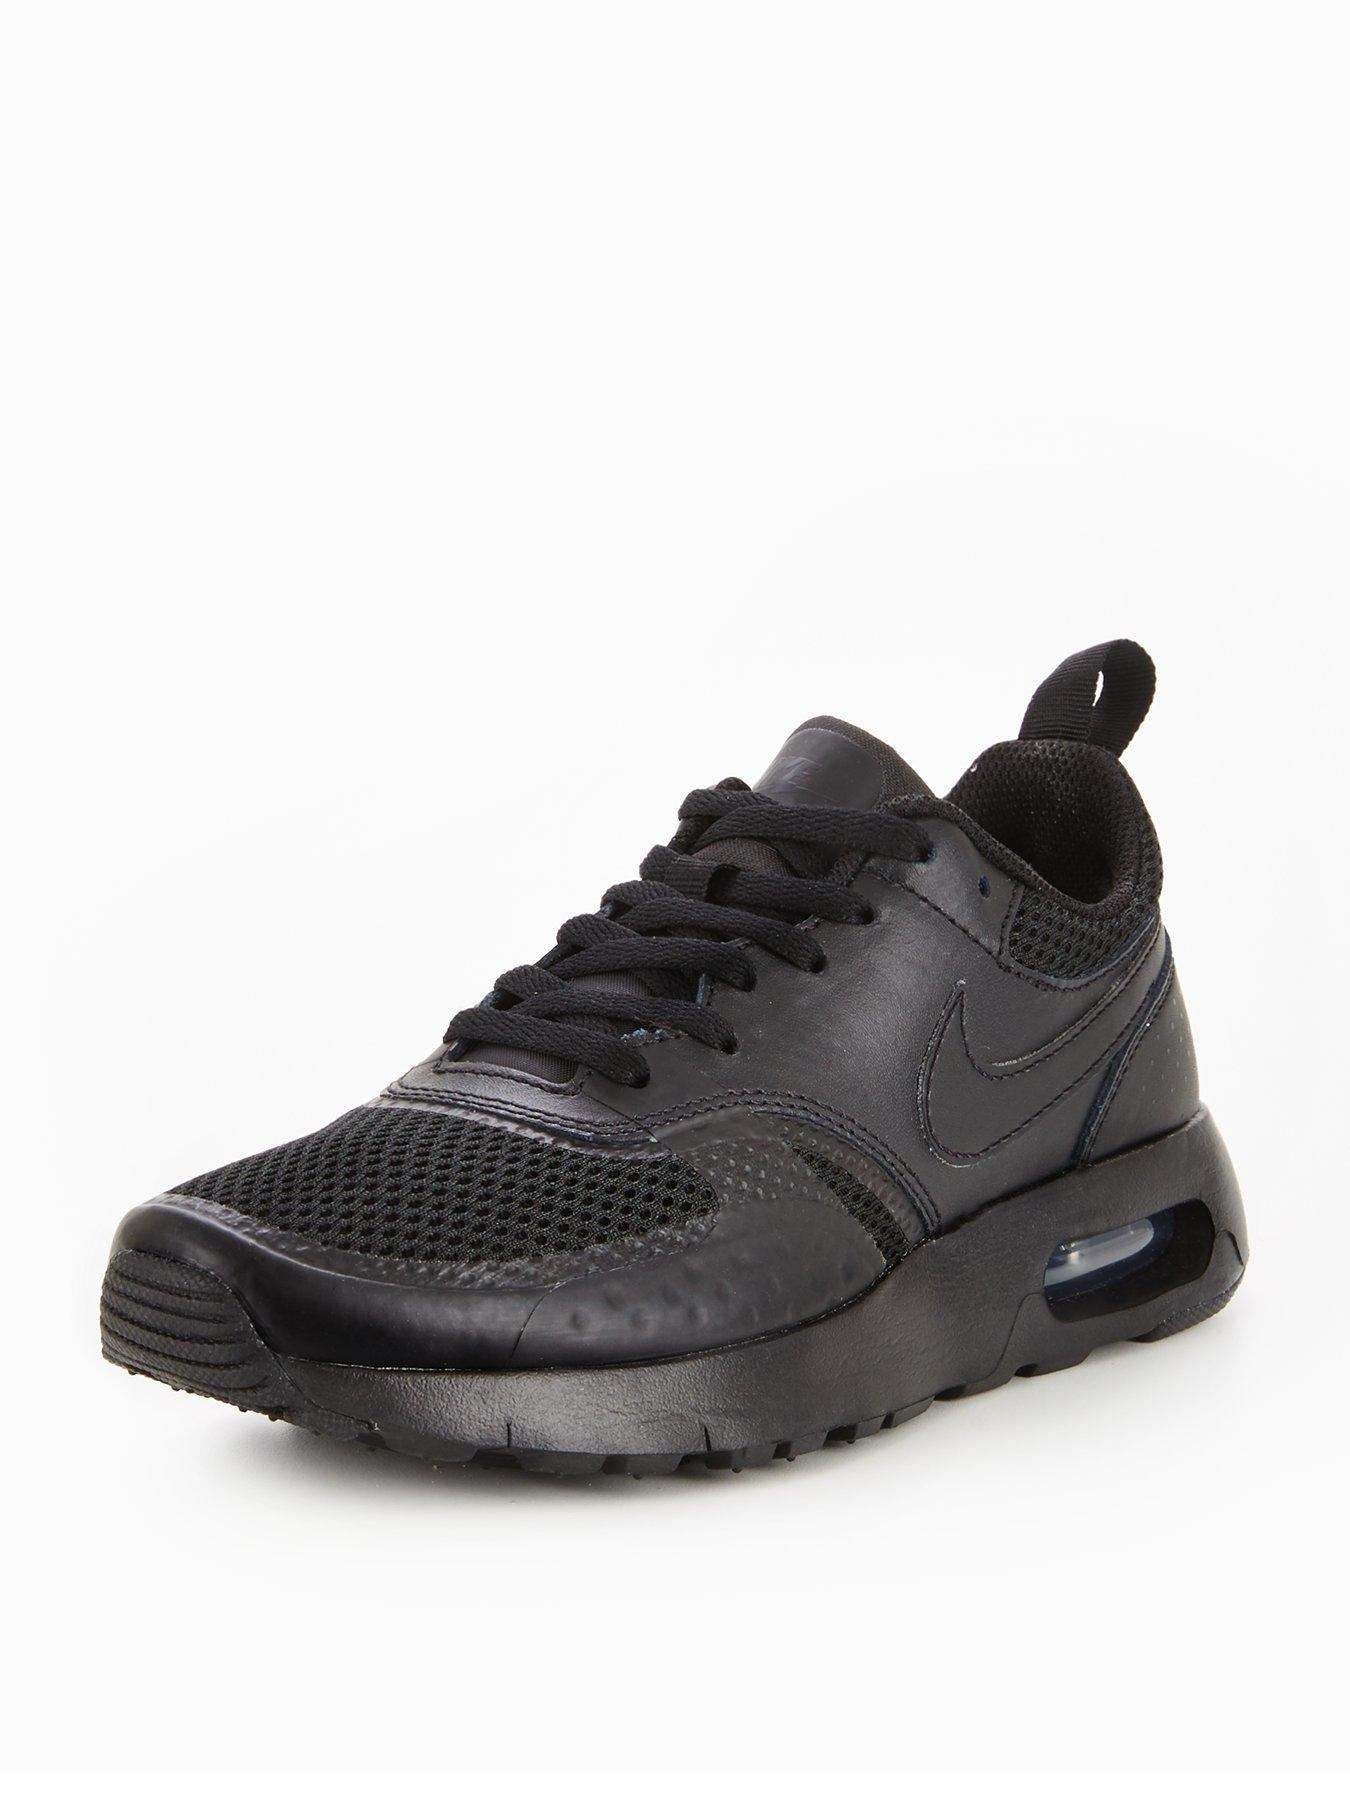 61eabbaa62e ... pretty cheap NIKE AIR MAX VISION (GS) 917857 003 CHILDRENS UK 3-6 ...